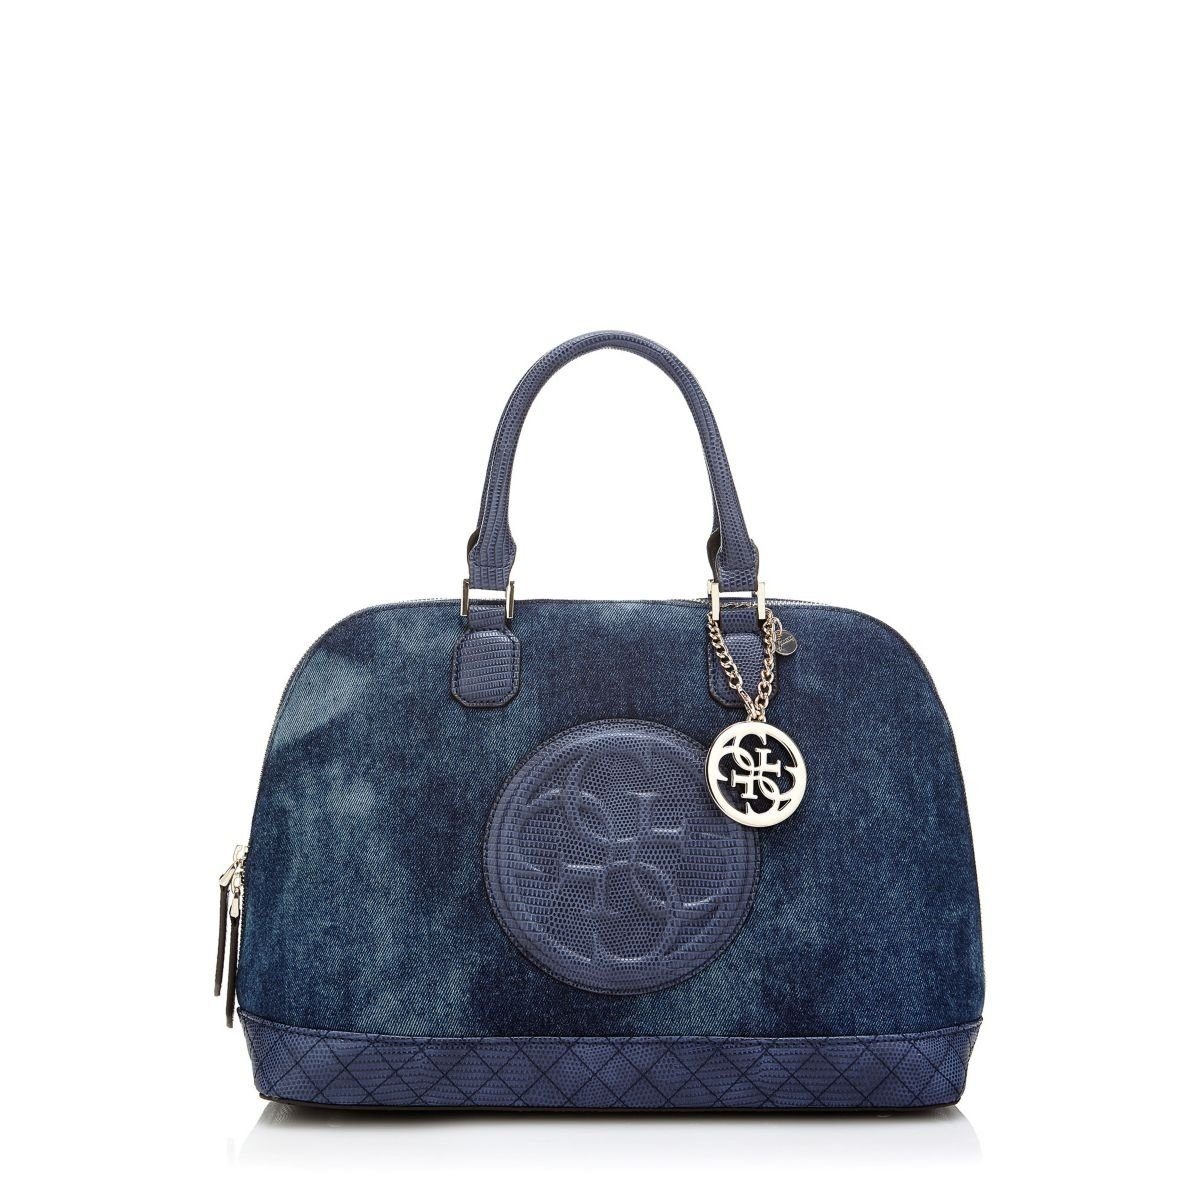 Guess JEANS-BAULETTO-TASCHE KORRY